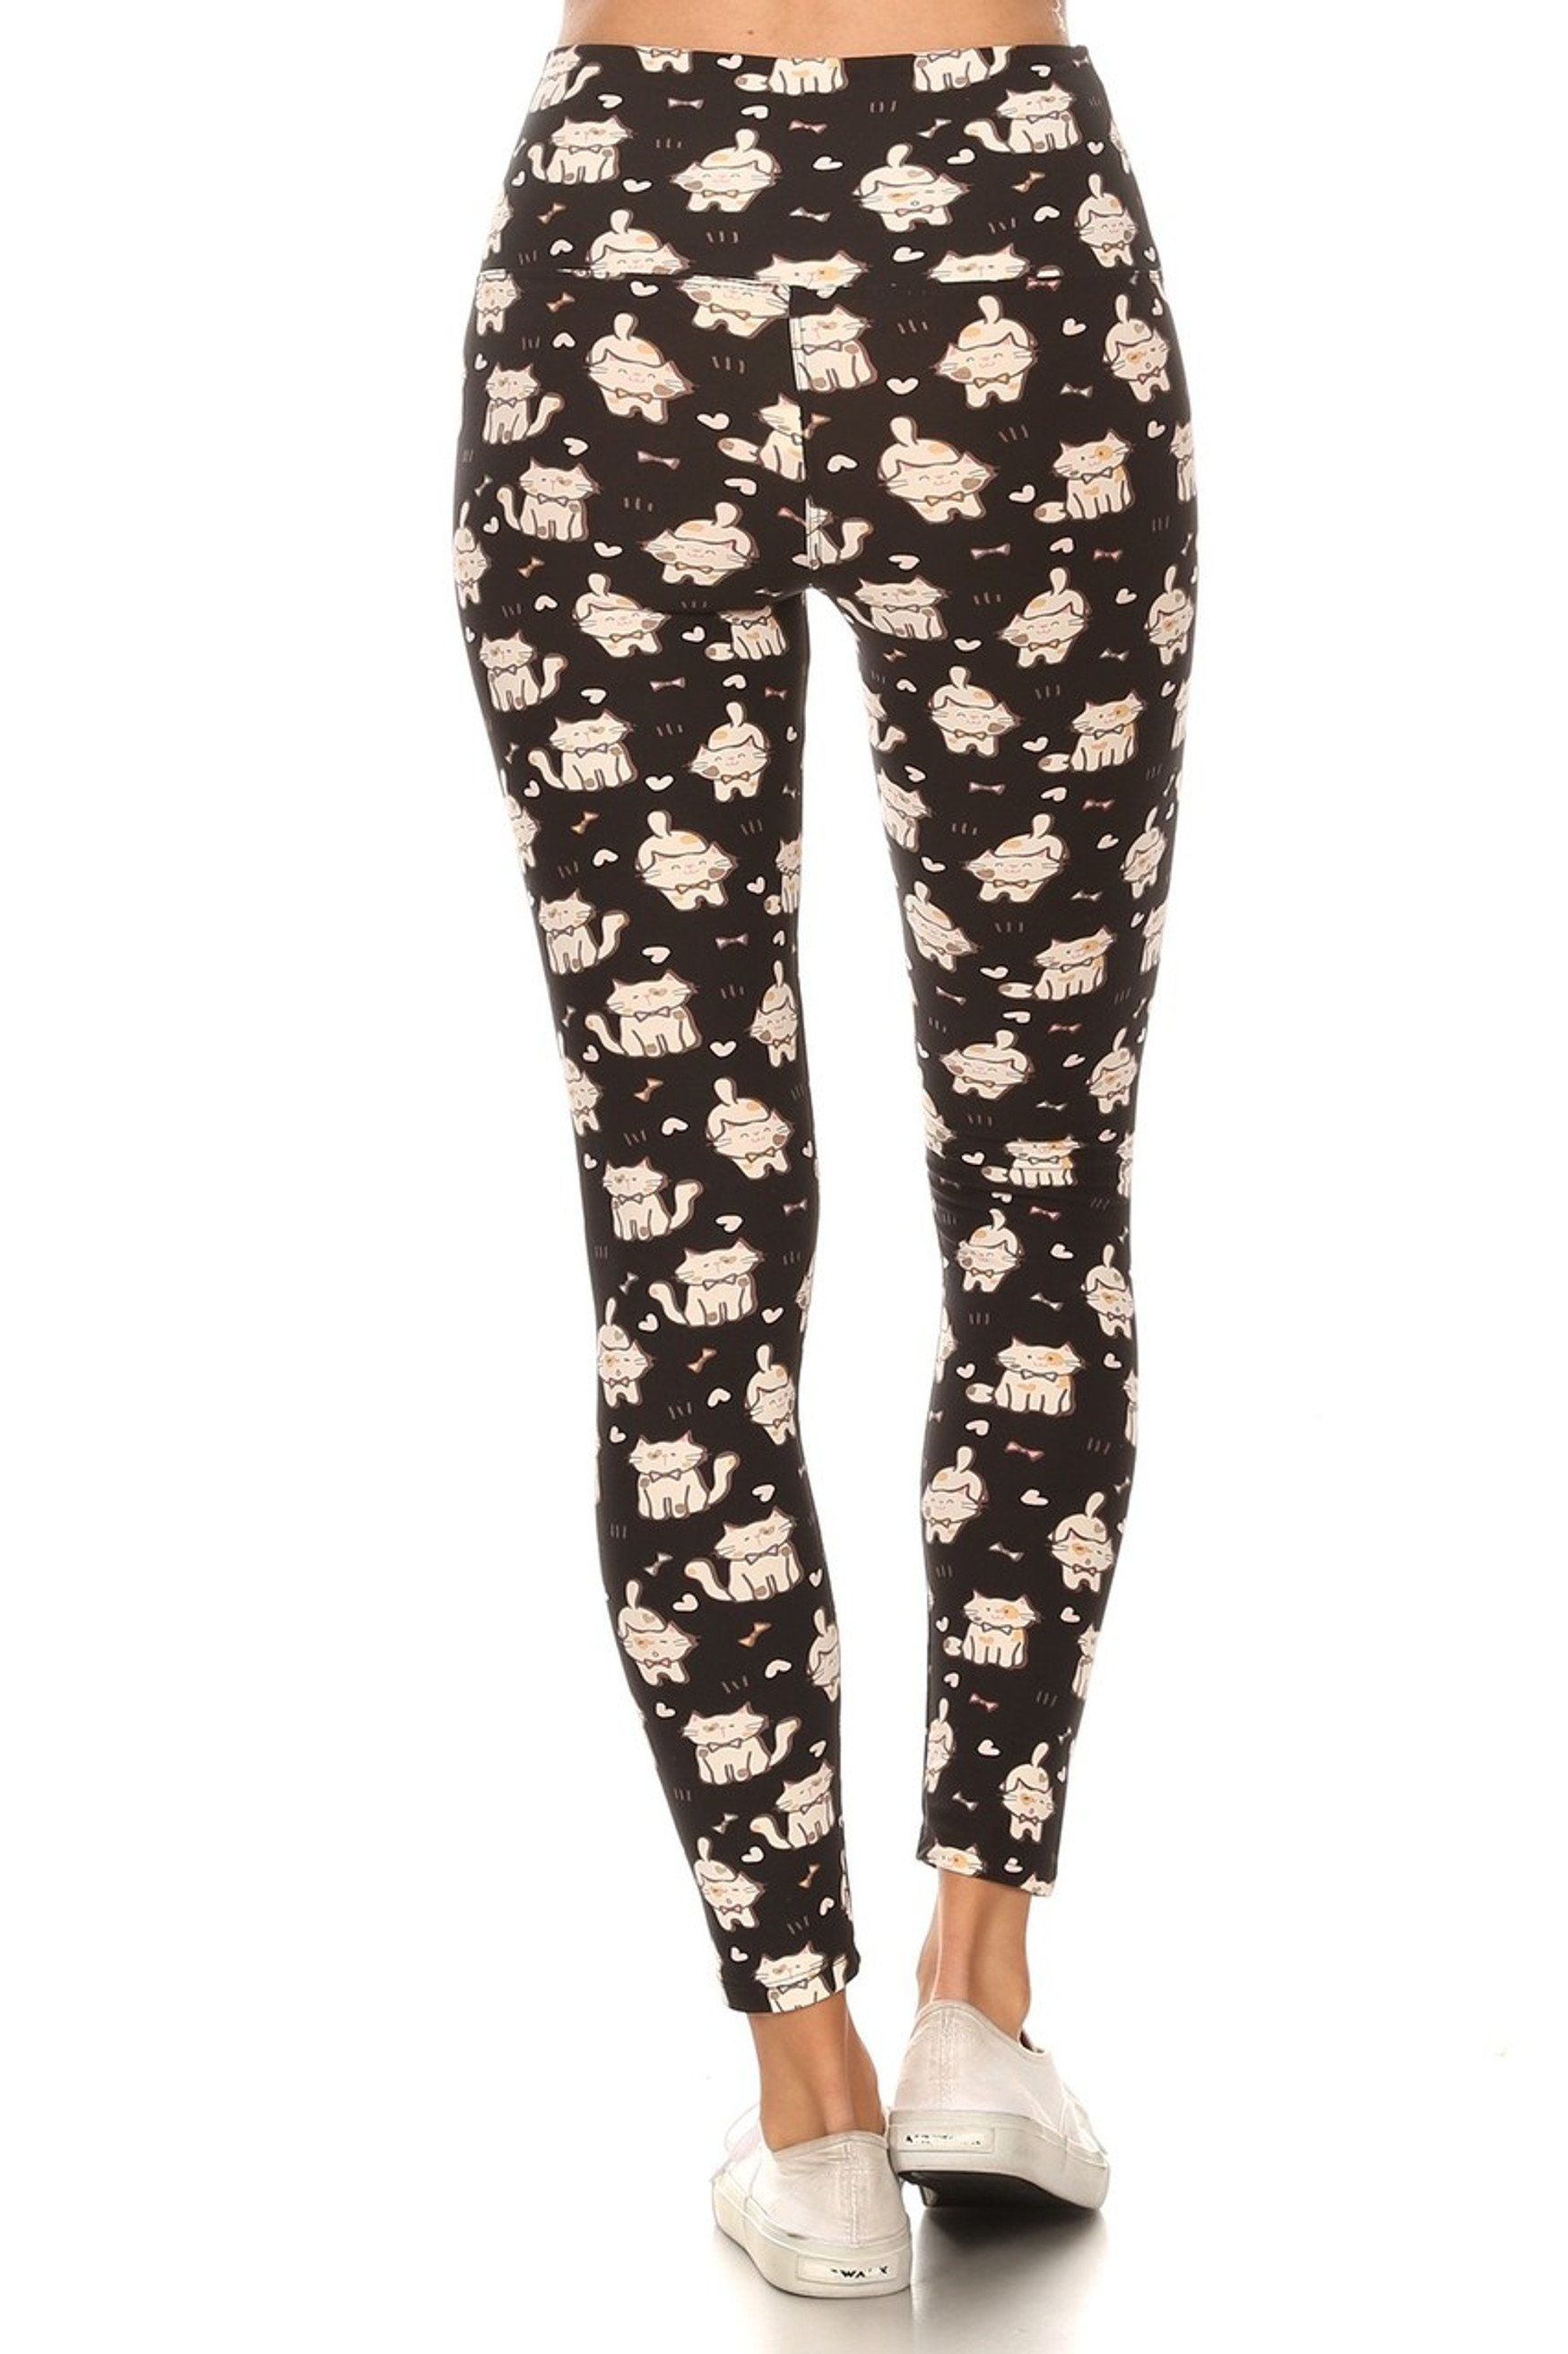 Brushed Bow Tie Kitty Cats High Waisted Leggings